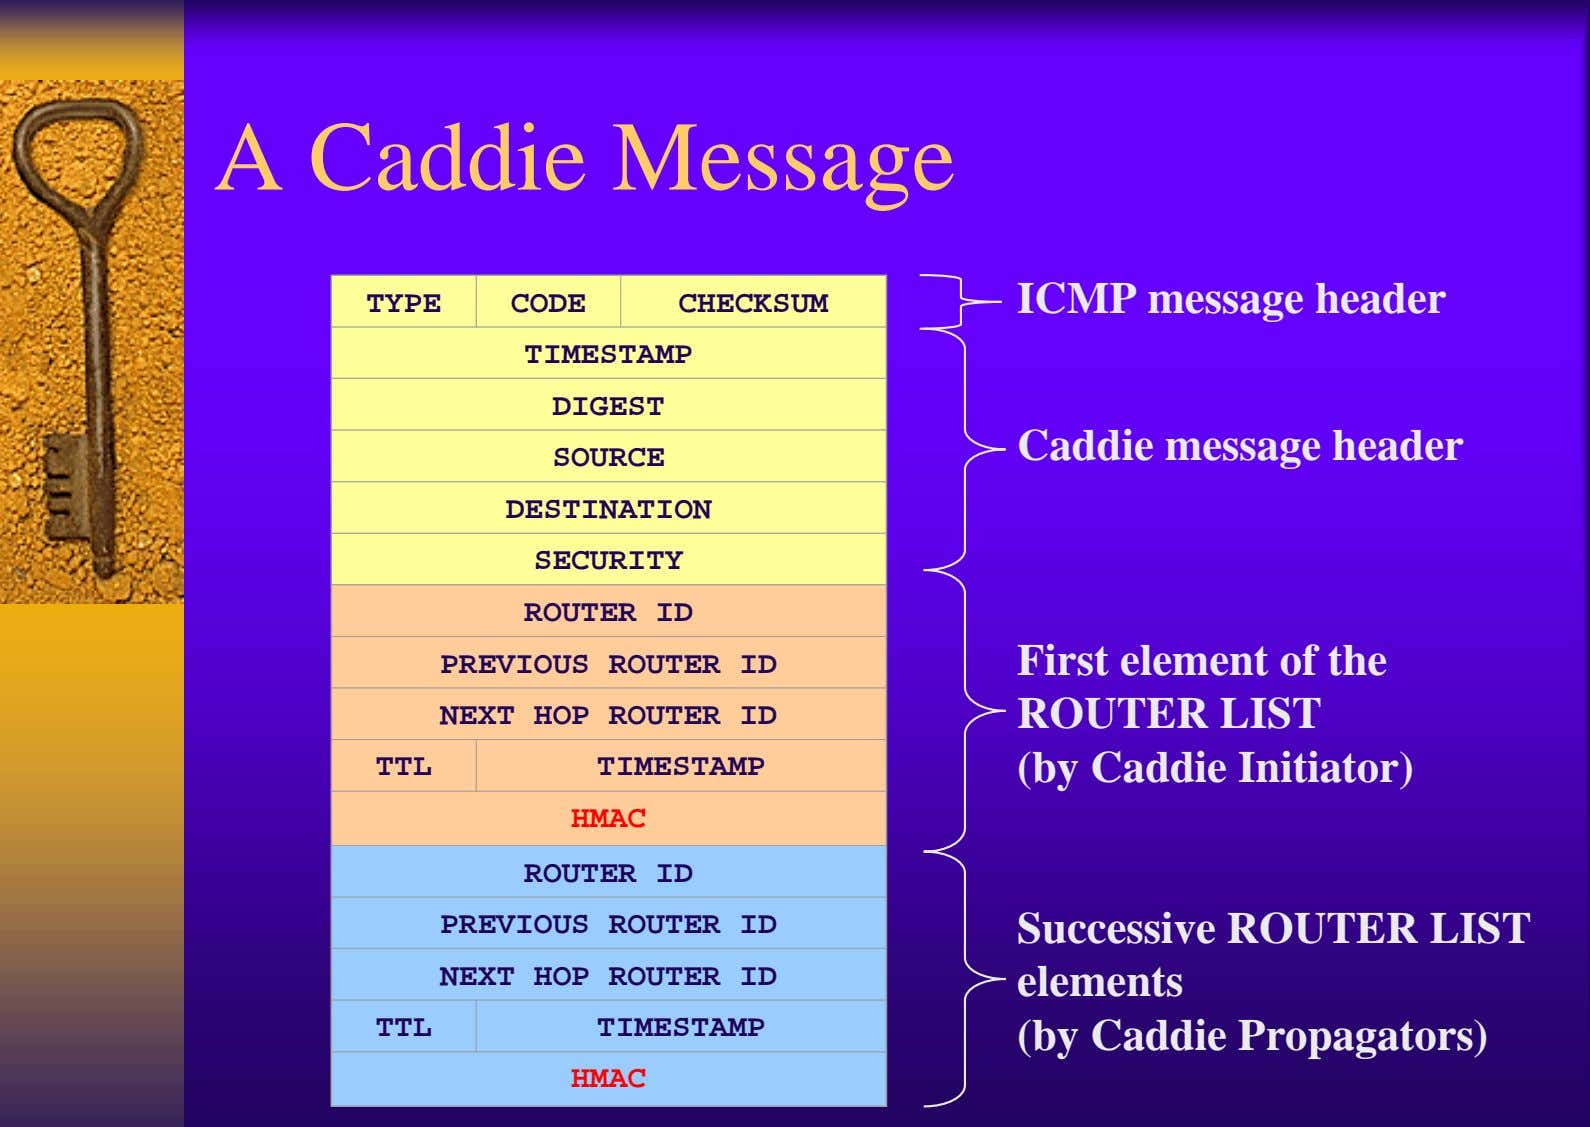 A Caddie Message TYPE CODE CHECKSUM ICMP message header TIMESTAMP DIGEST Caddie message header SOURCE